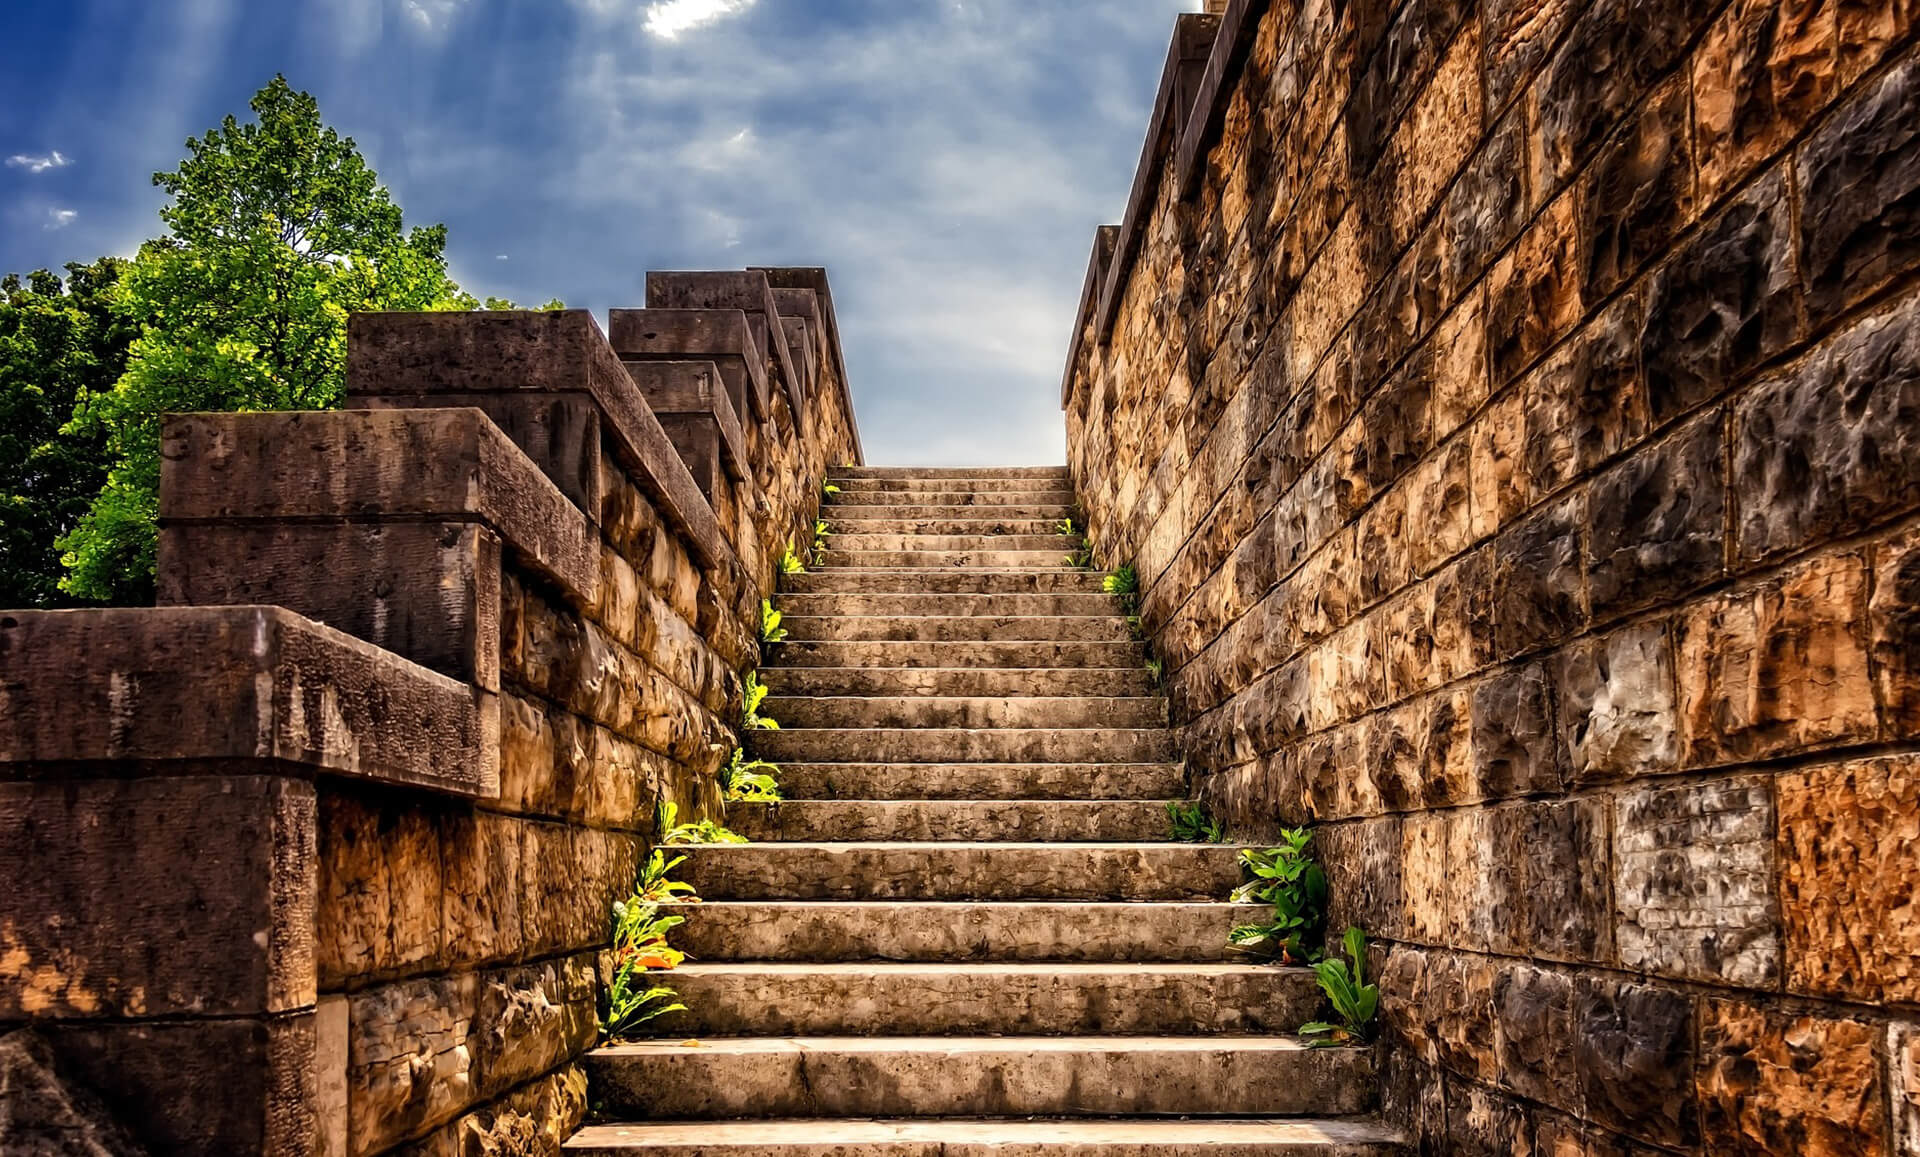 Stone stairs going up-enewsletter-Benny Hinn Ministries